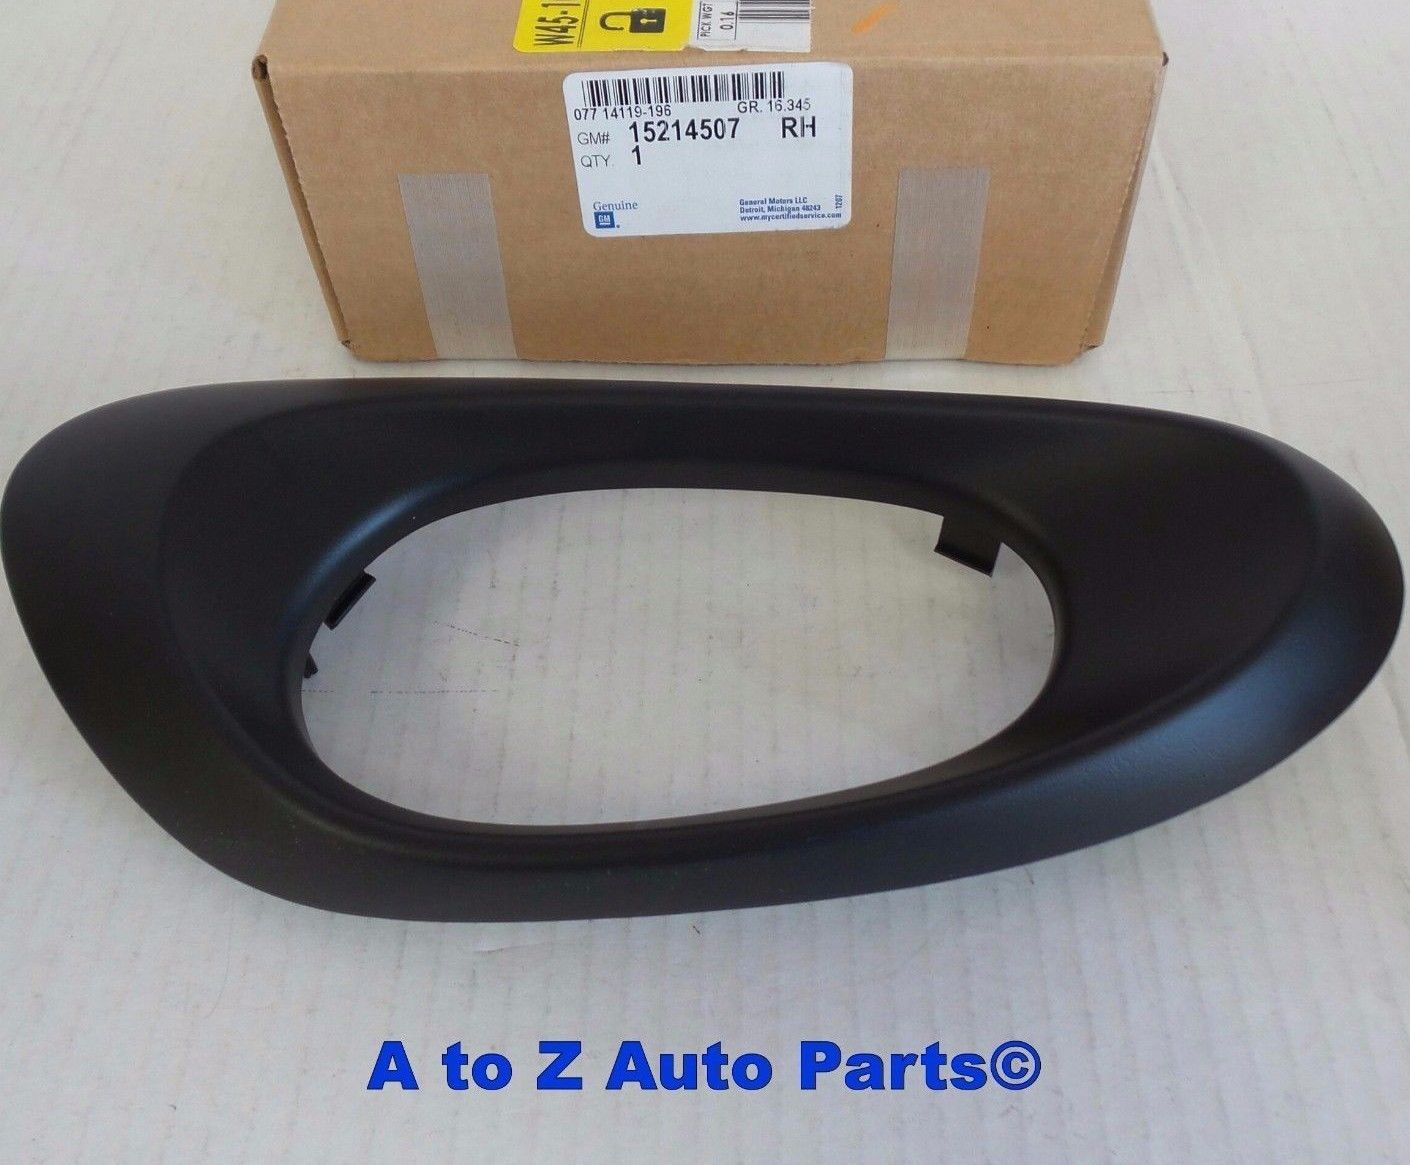 2002-2009 Trailblazer New OEM RH Rear Inside Door Handle Bezel 15214507